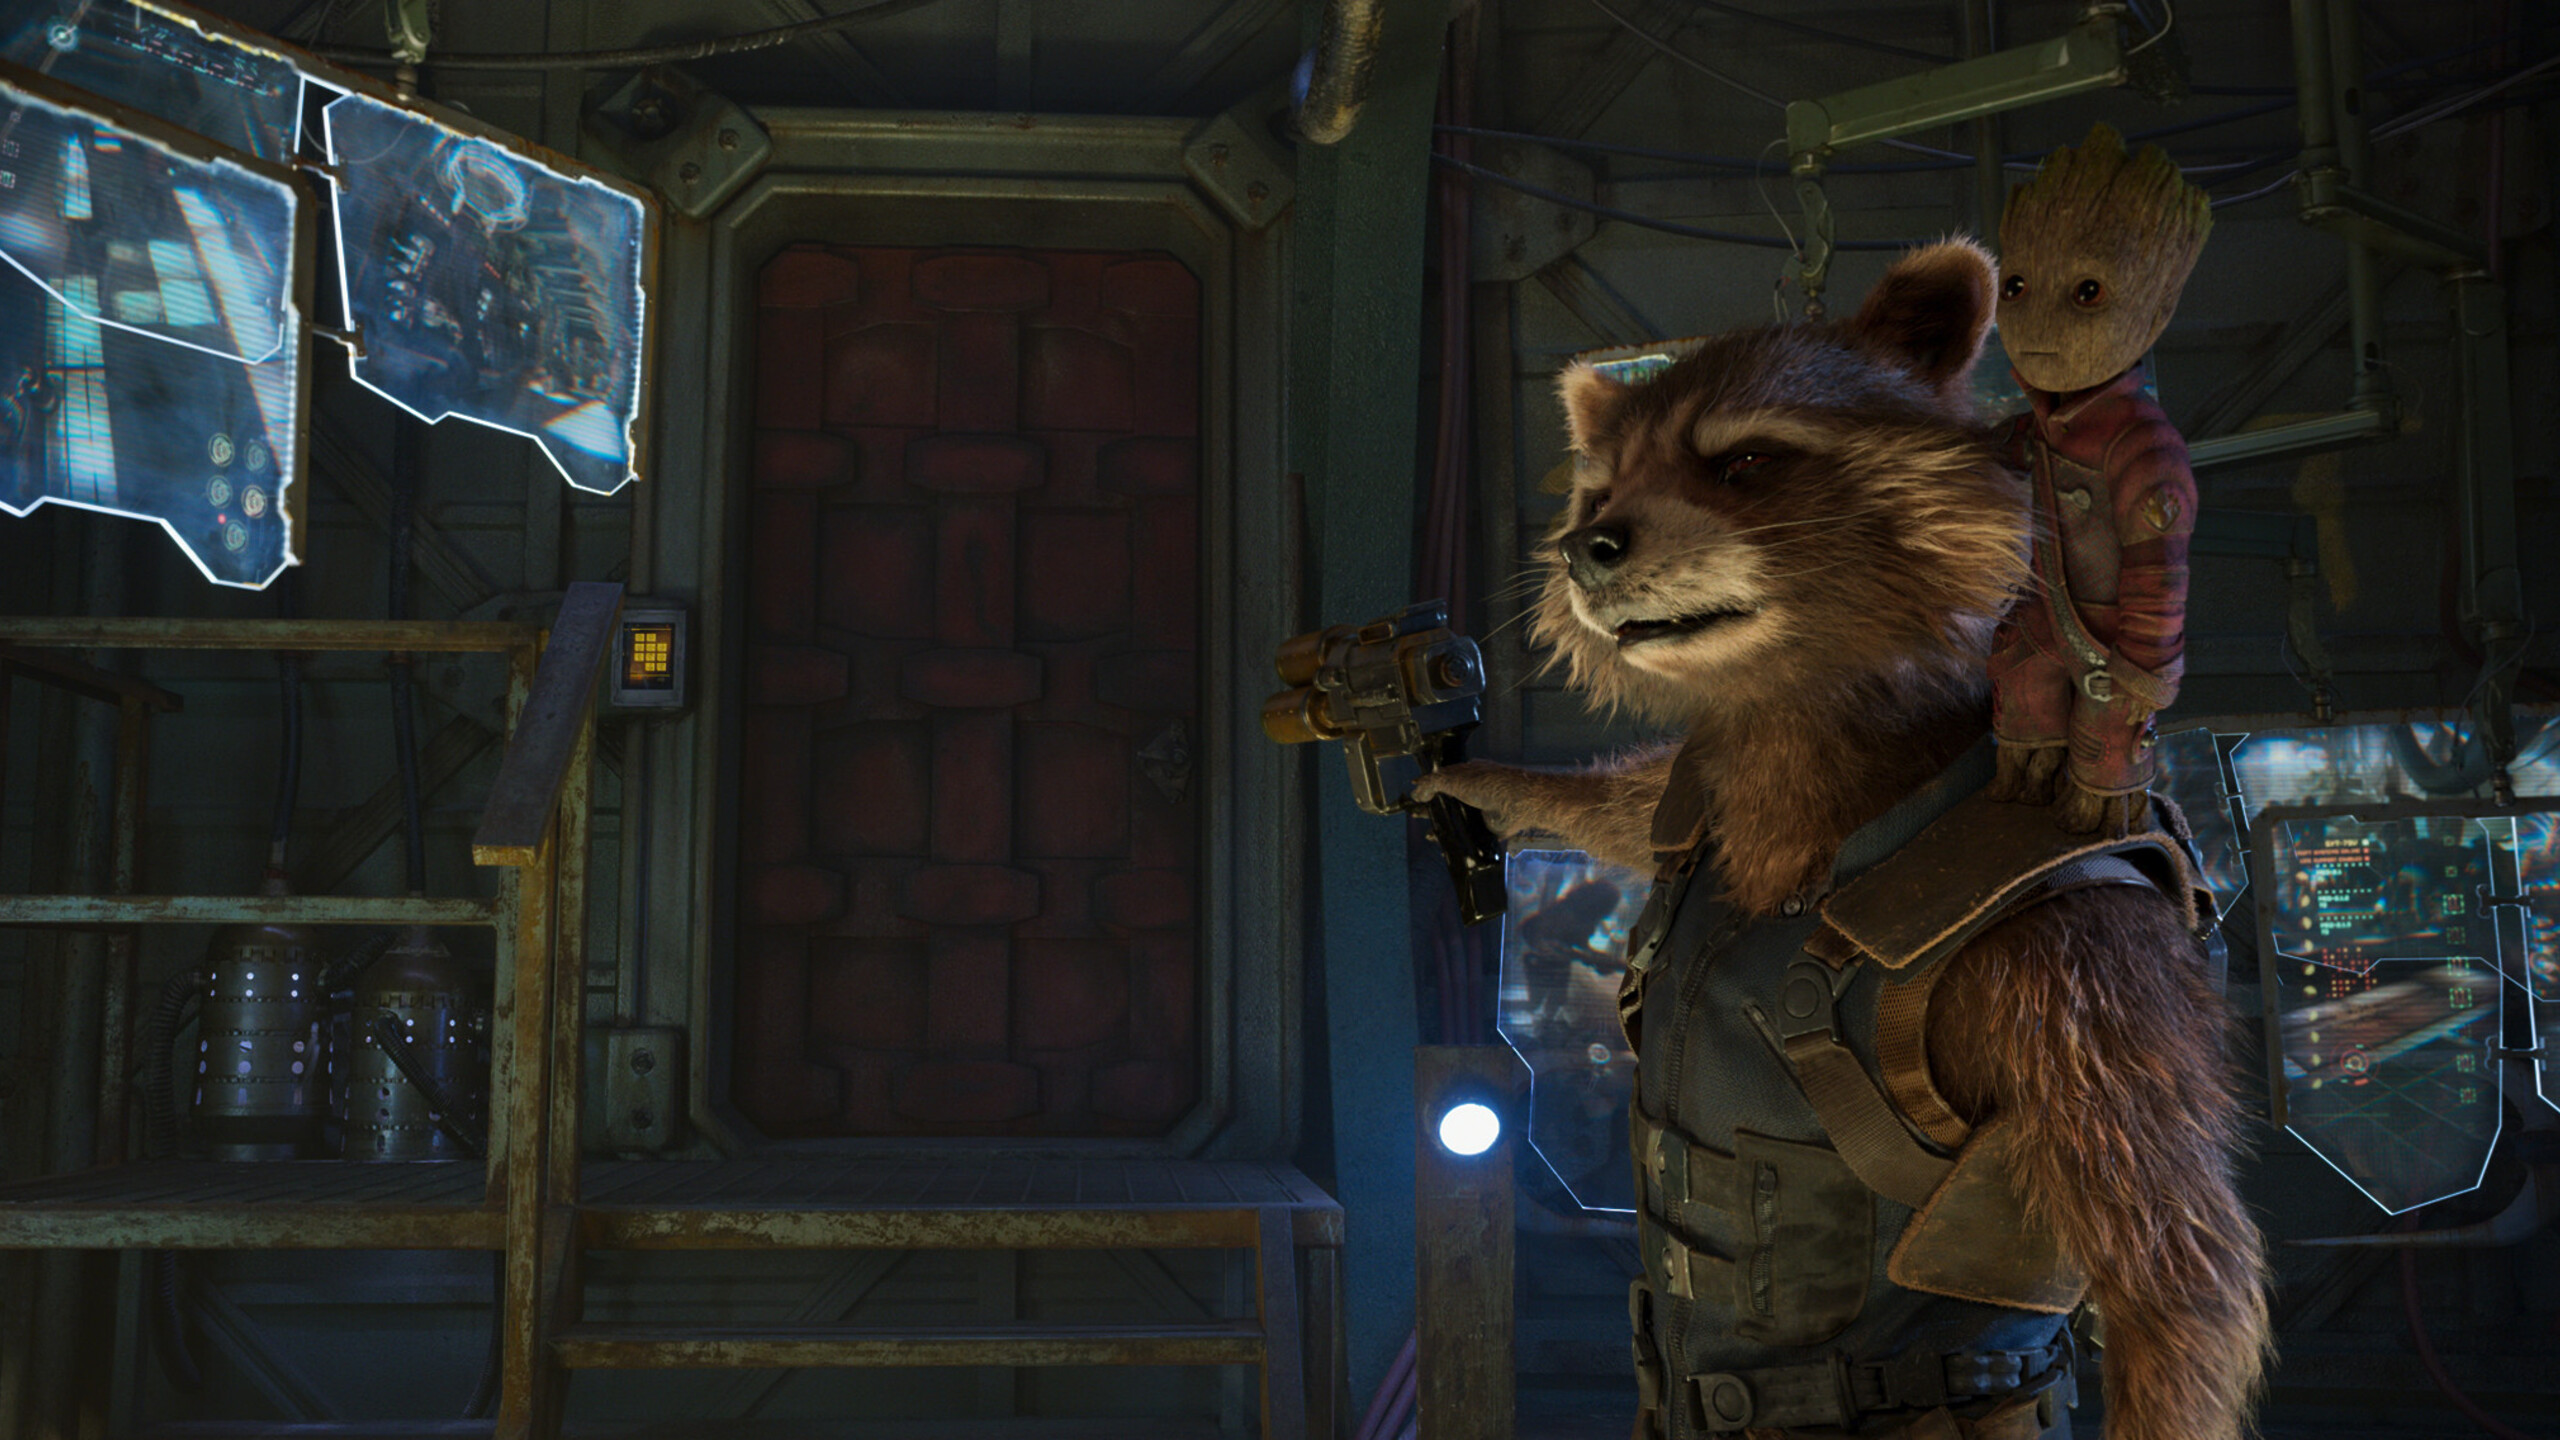 baby-groot-and-rocket-raccoon-in-guardians-of-the-galaxy-vol-2-new.jpg